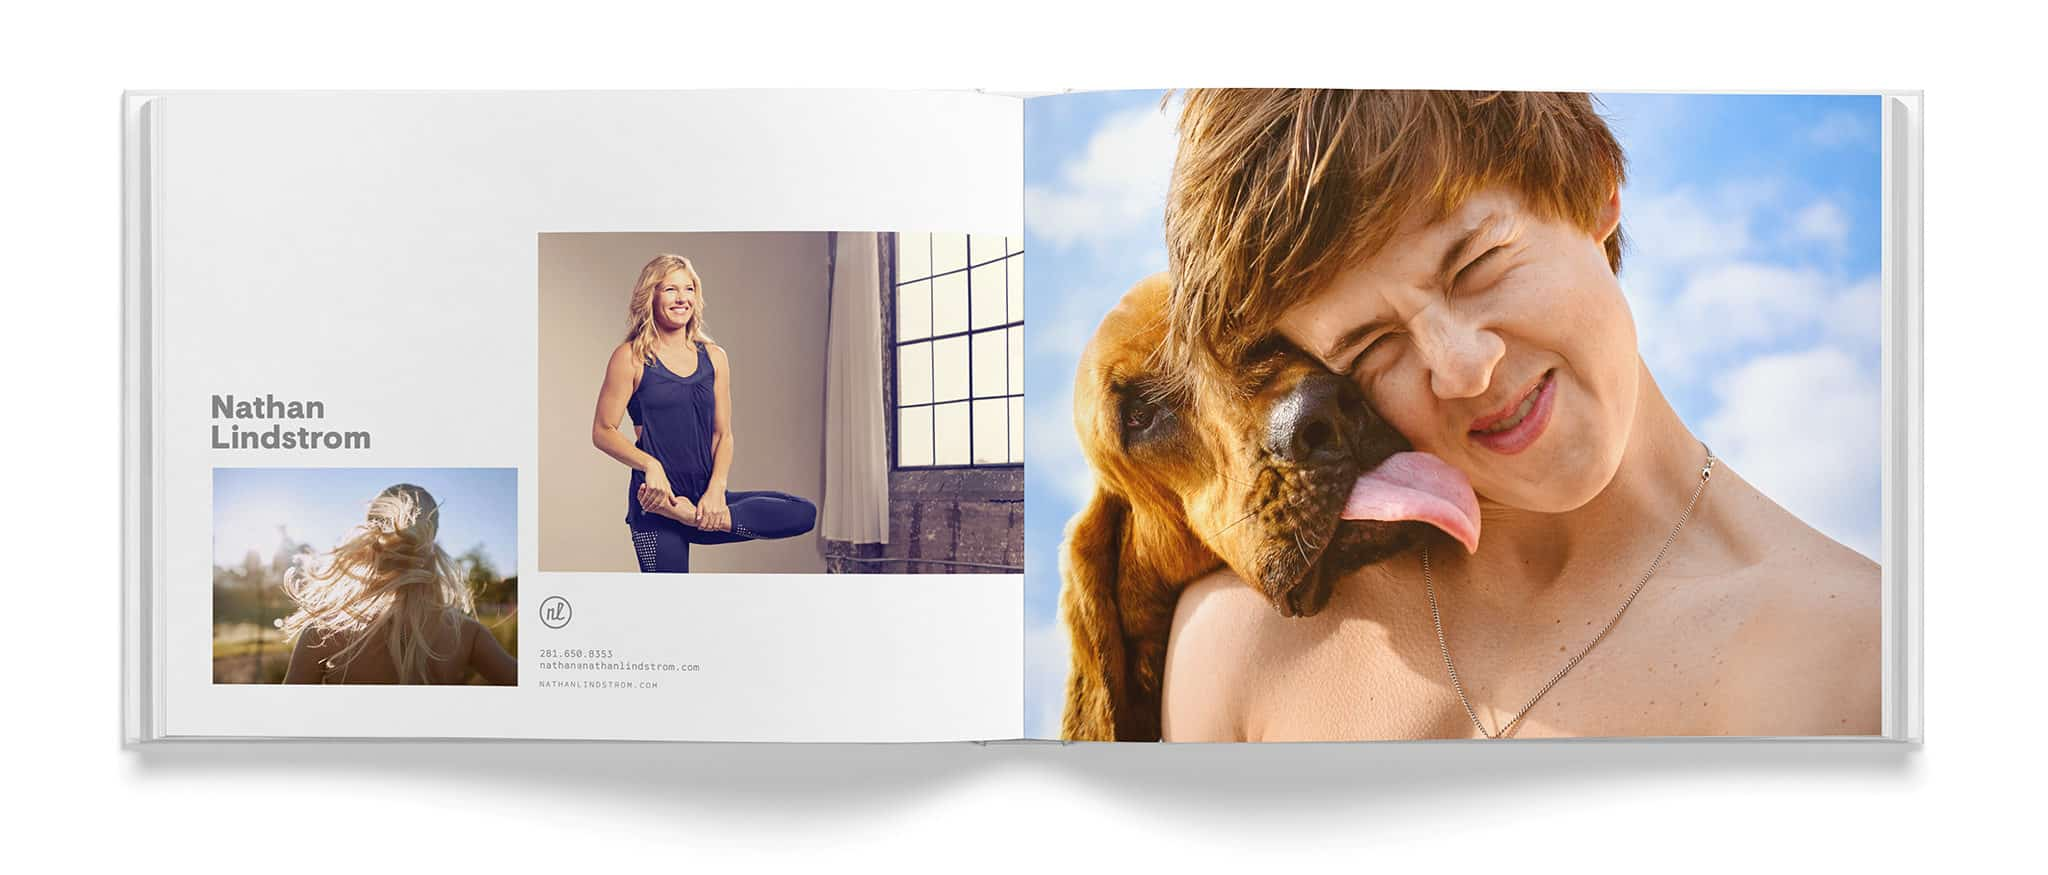 Portfolio spread for Nathan Lindstrom Photography | Designed by Field of Study: A branding and graphic design consultancy | Houston TX | Jennifer Blanco & John Earles